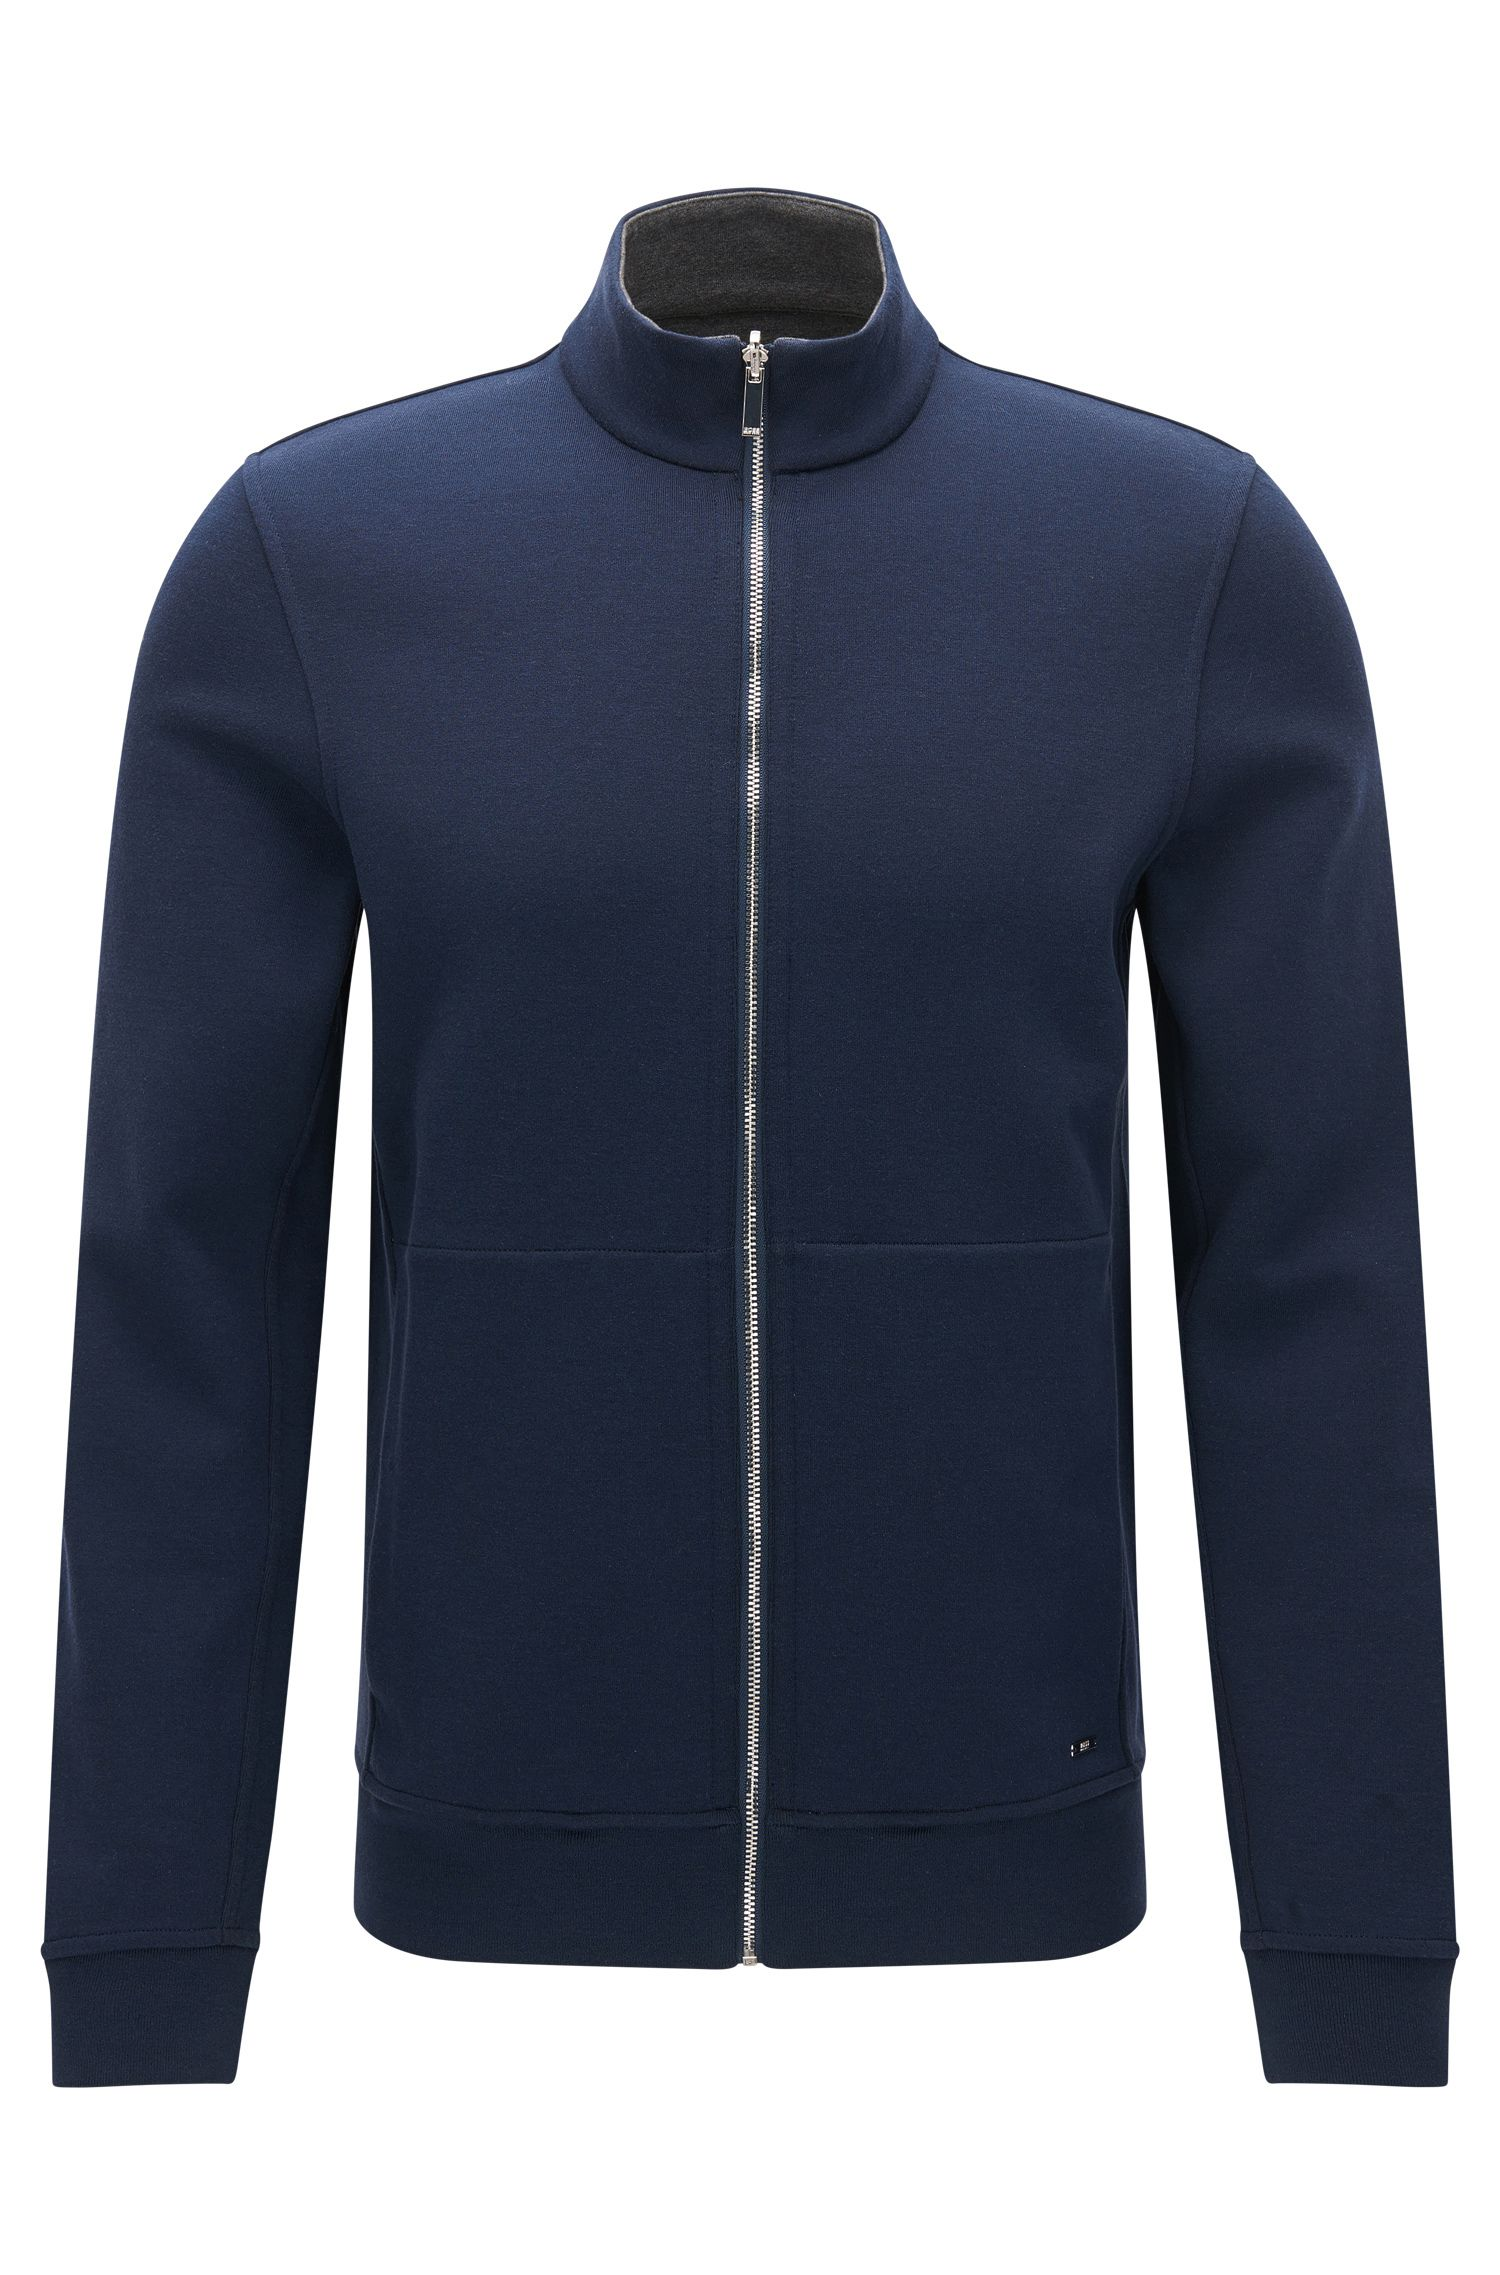 Regular-fit reversible sweatshirt jacket